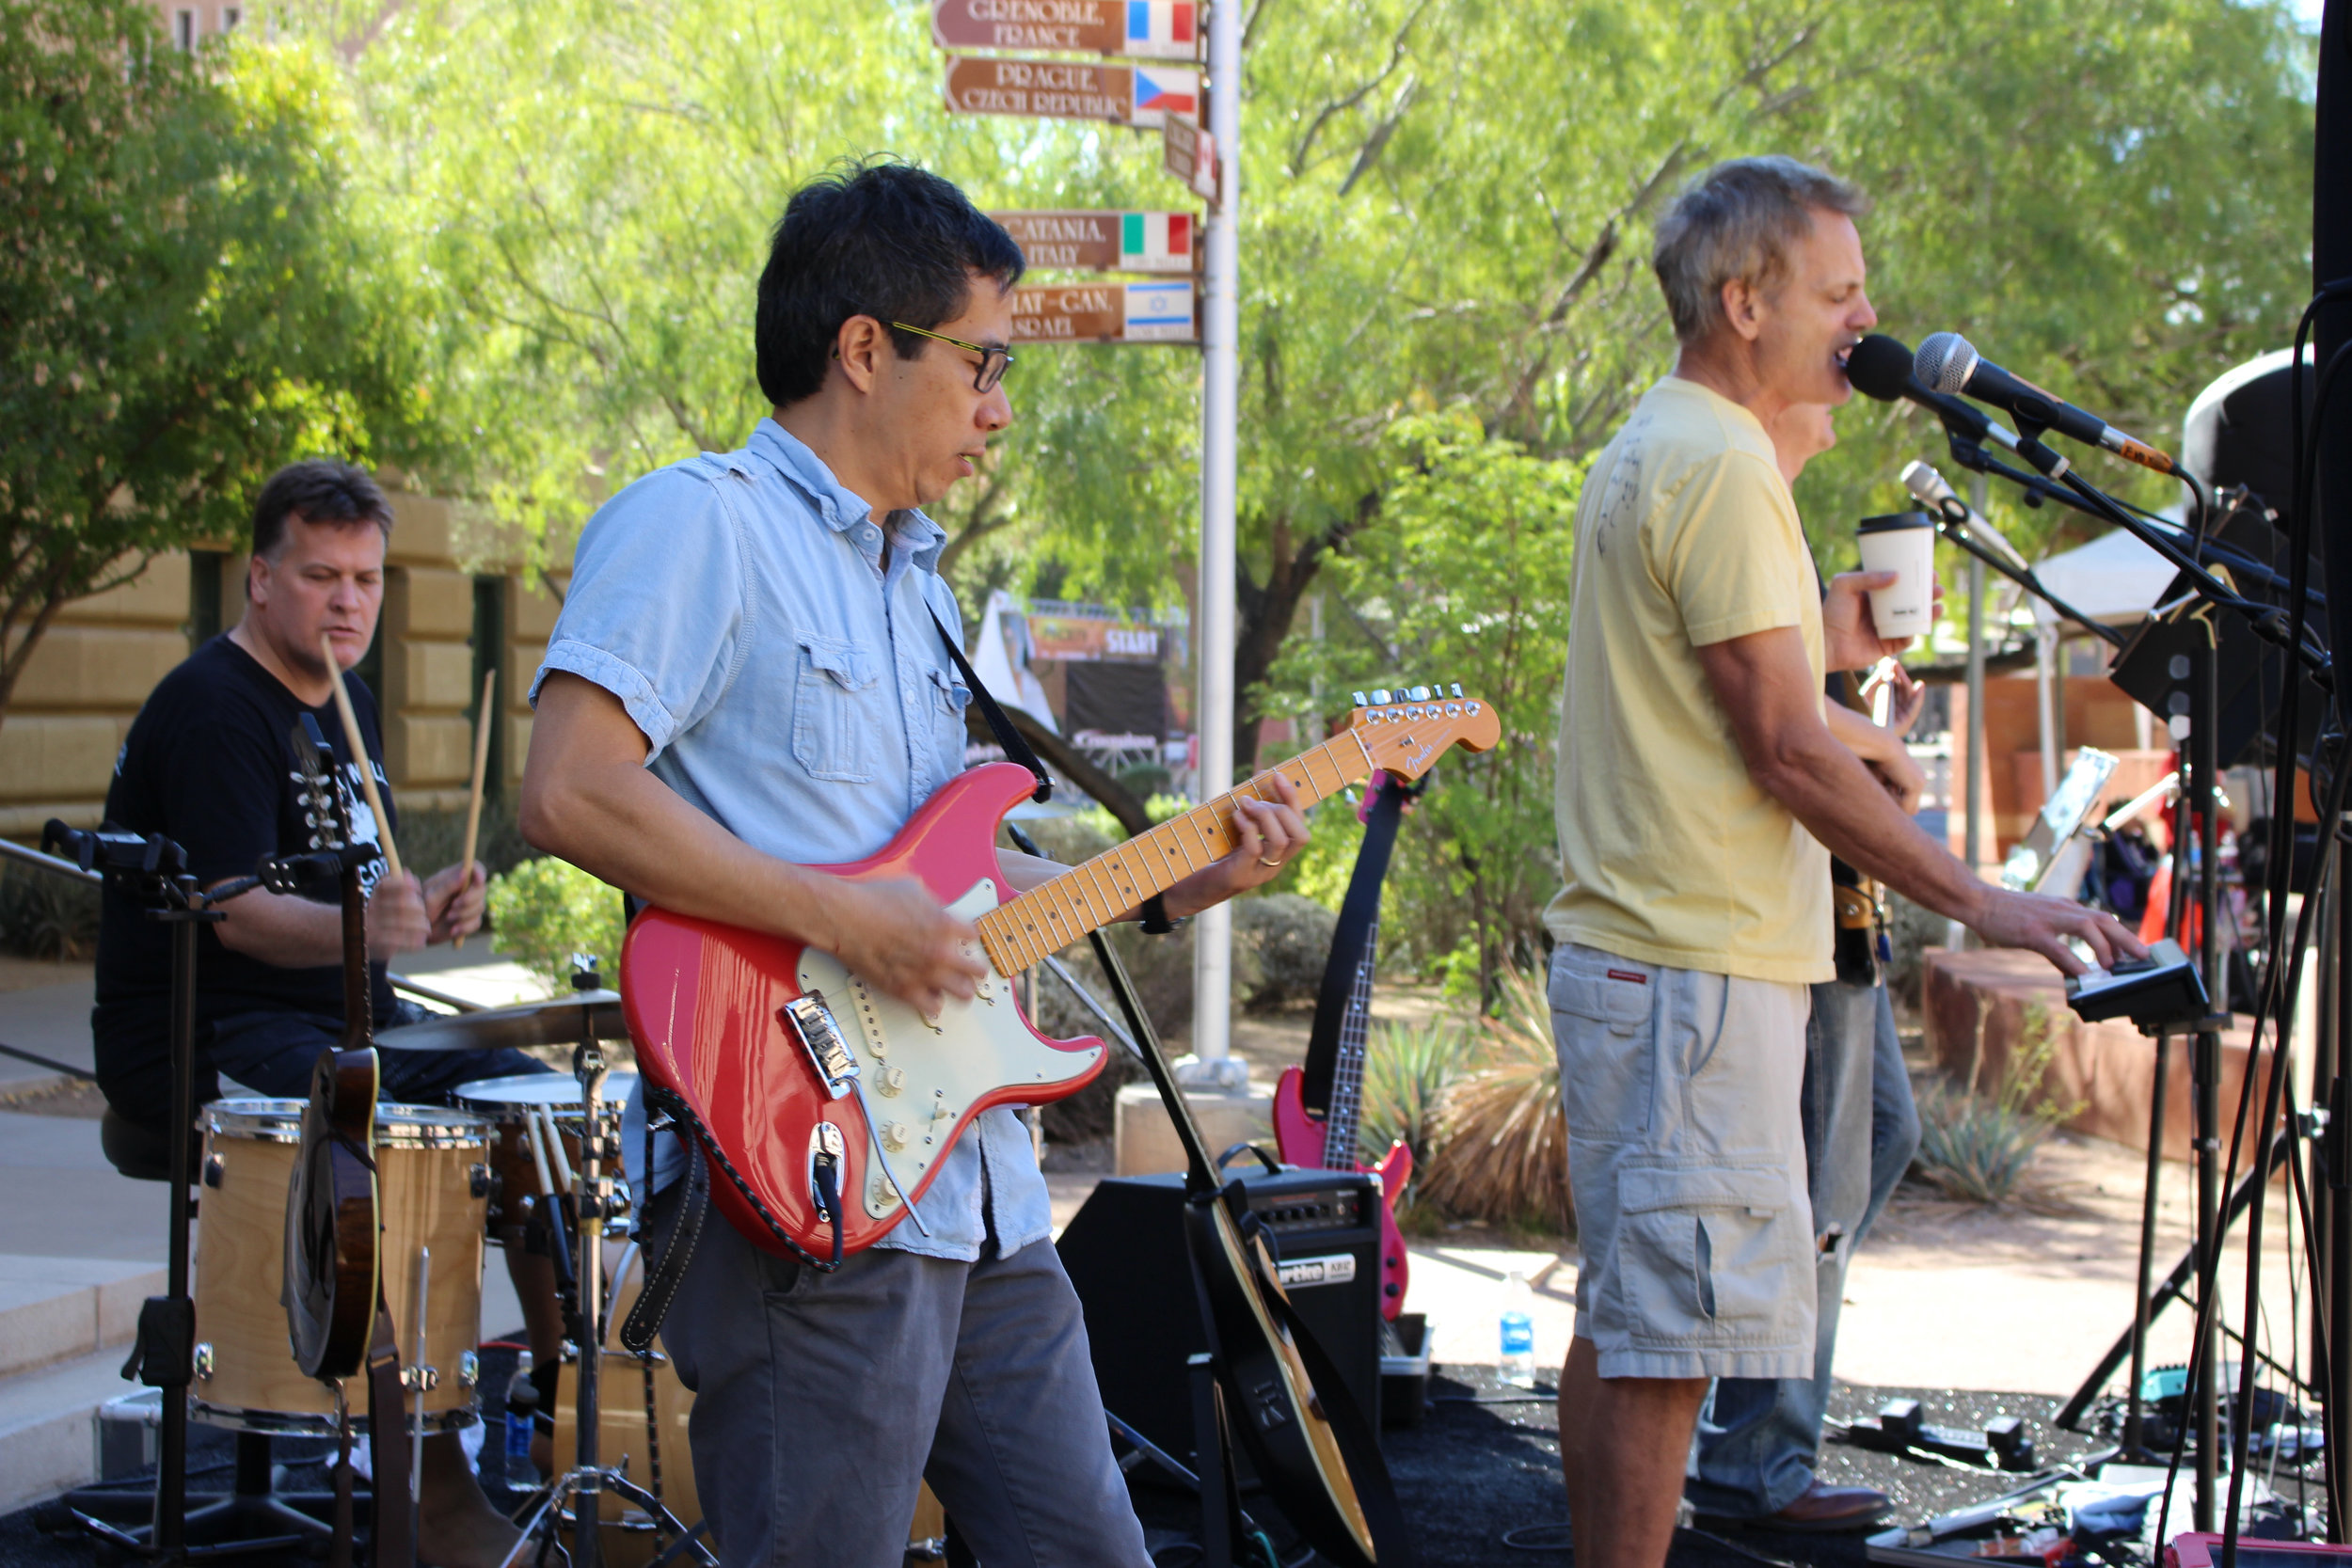 Henry Wong plays guitar alongside members of local rock band The Flare at the 42nd annual TV Phoenix 10K/Half Marathon in Phoenix, Ariz. on Nov. 5, 2017.